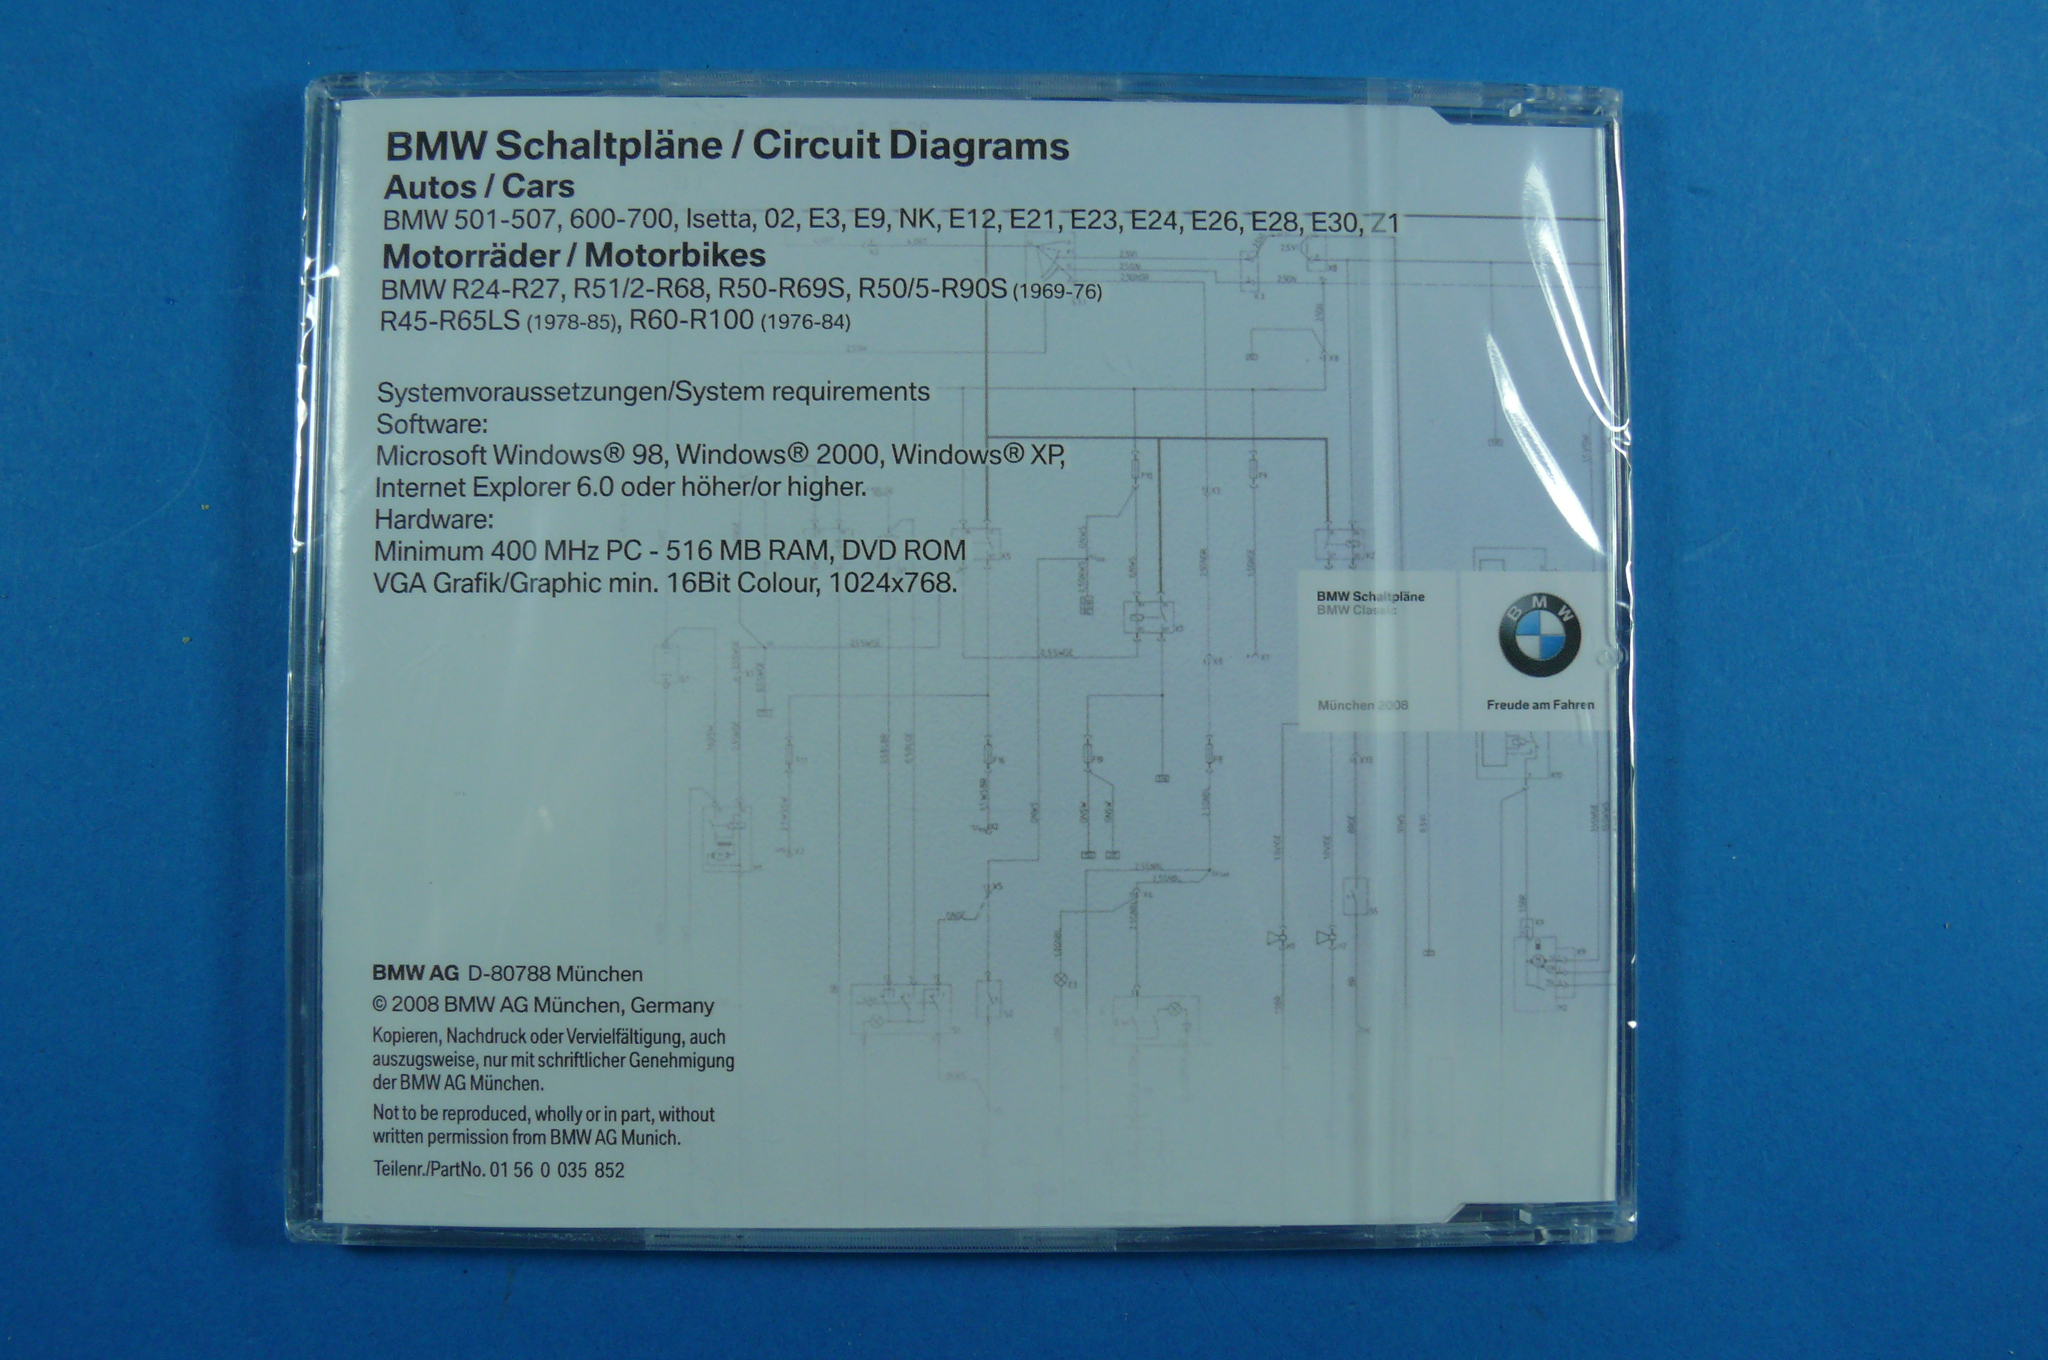 Bmw 01560035852 Fmw Tuning Autoteile Z1 Wiring Diagram Cd Schematic Circuit Diagrams 501 E30 De En 3er 5er 6er 7er